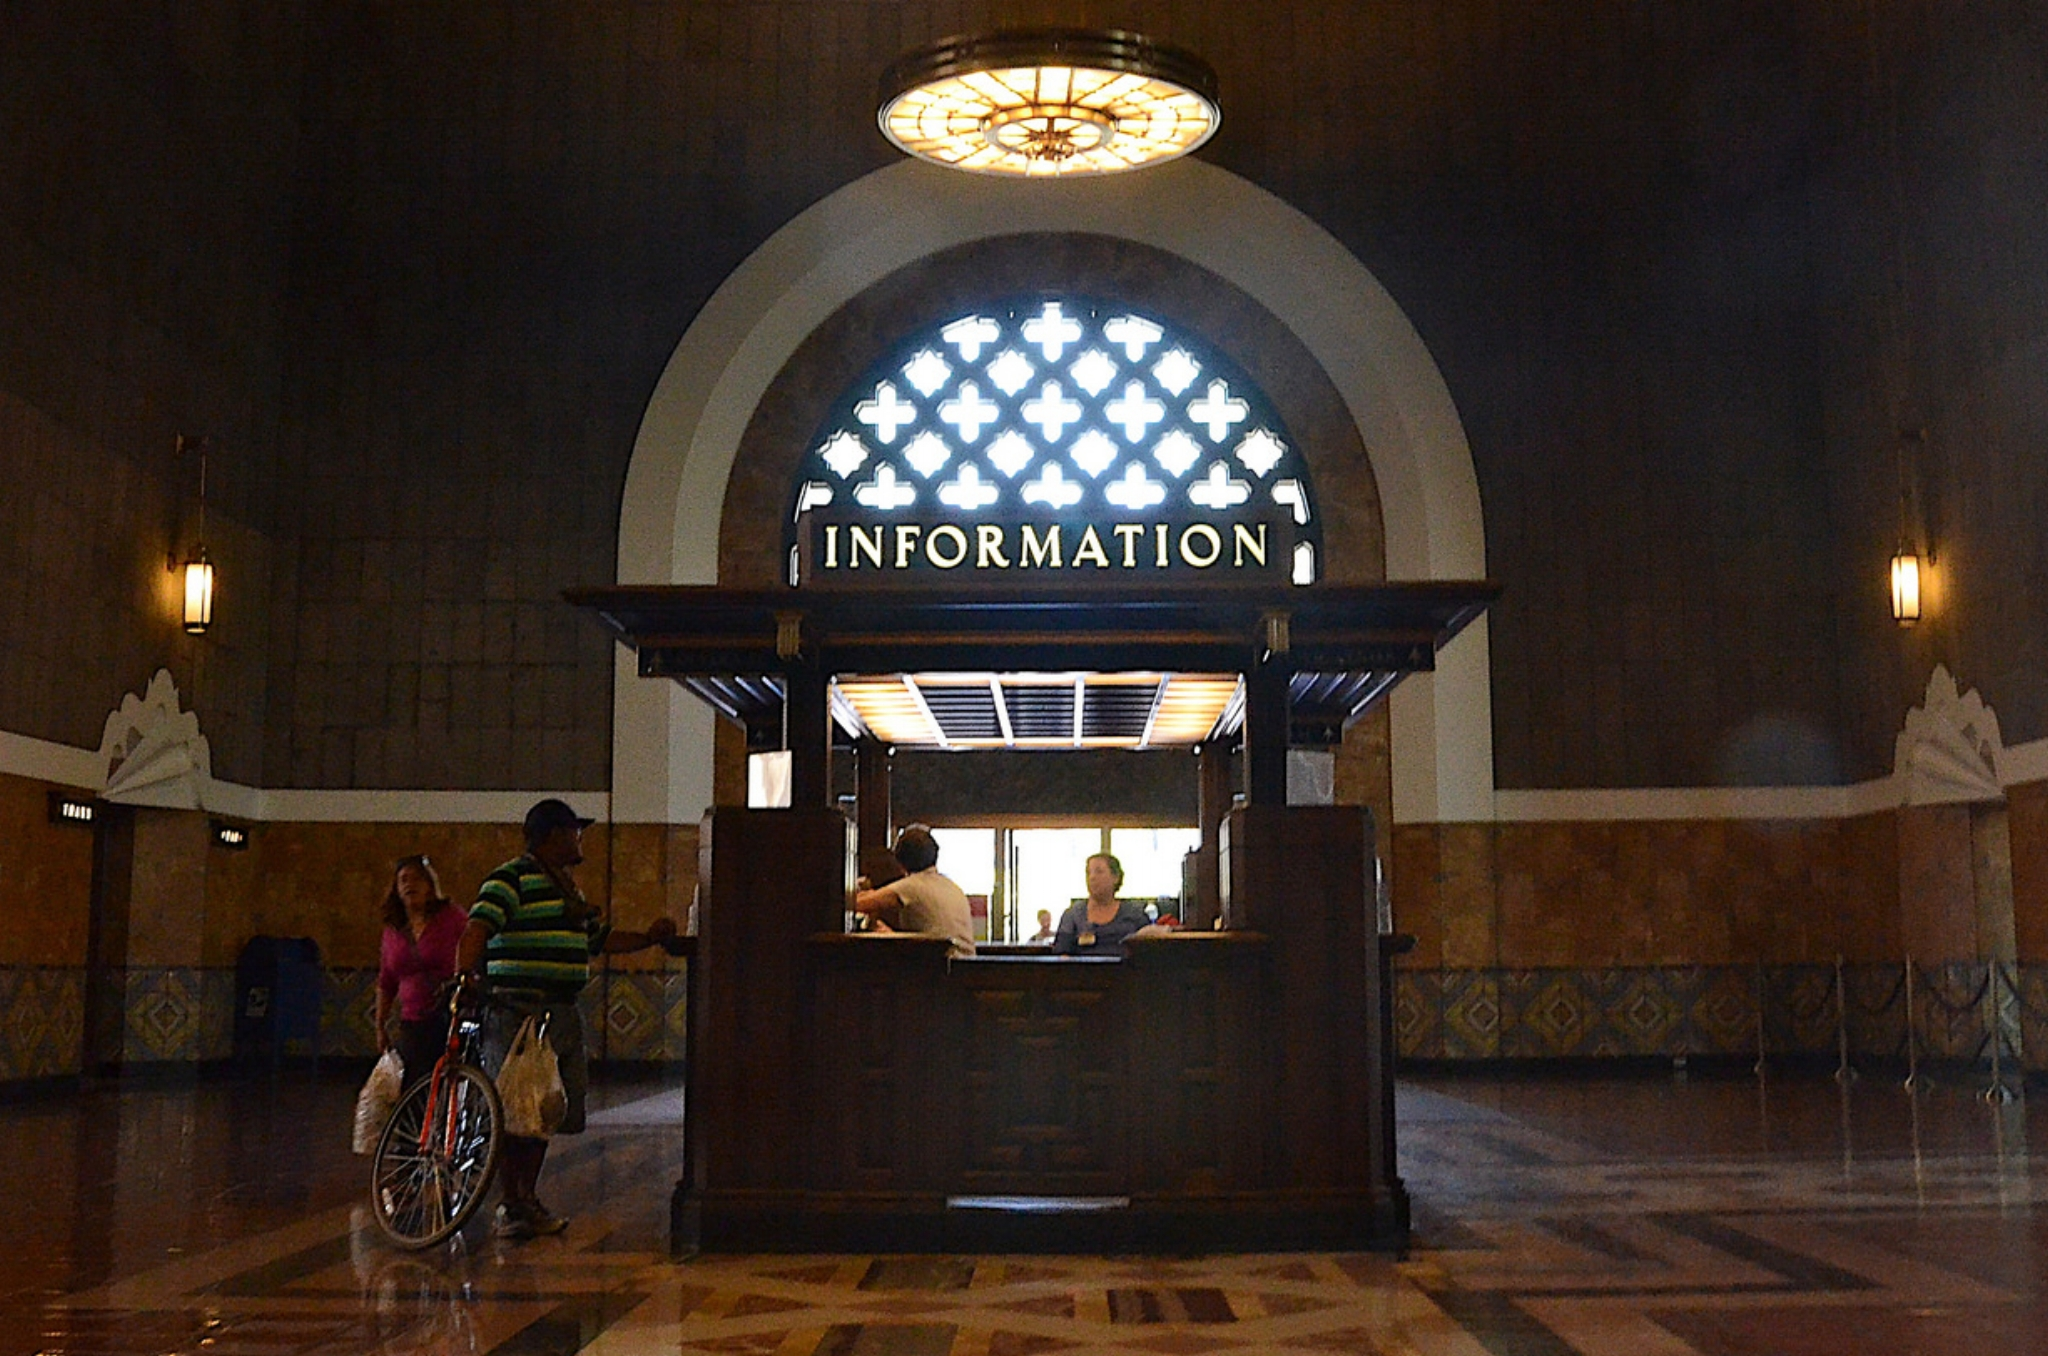 Help & documentation:  A staffed information booth at Los Angeles' Union Station. Photo credit: Russell Mondy, Flickr